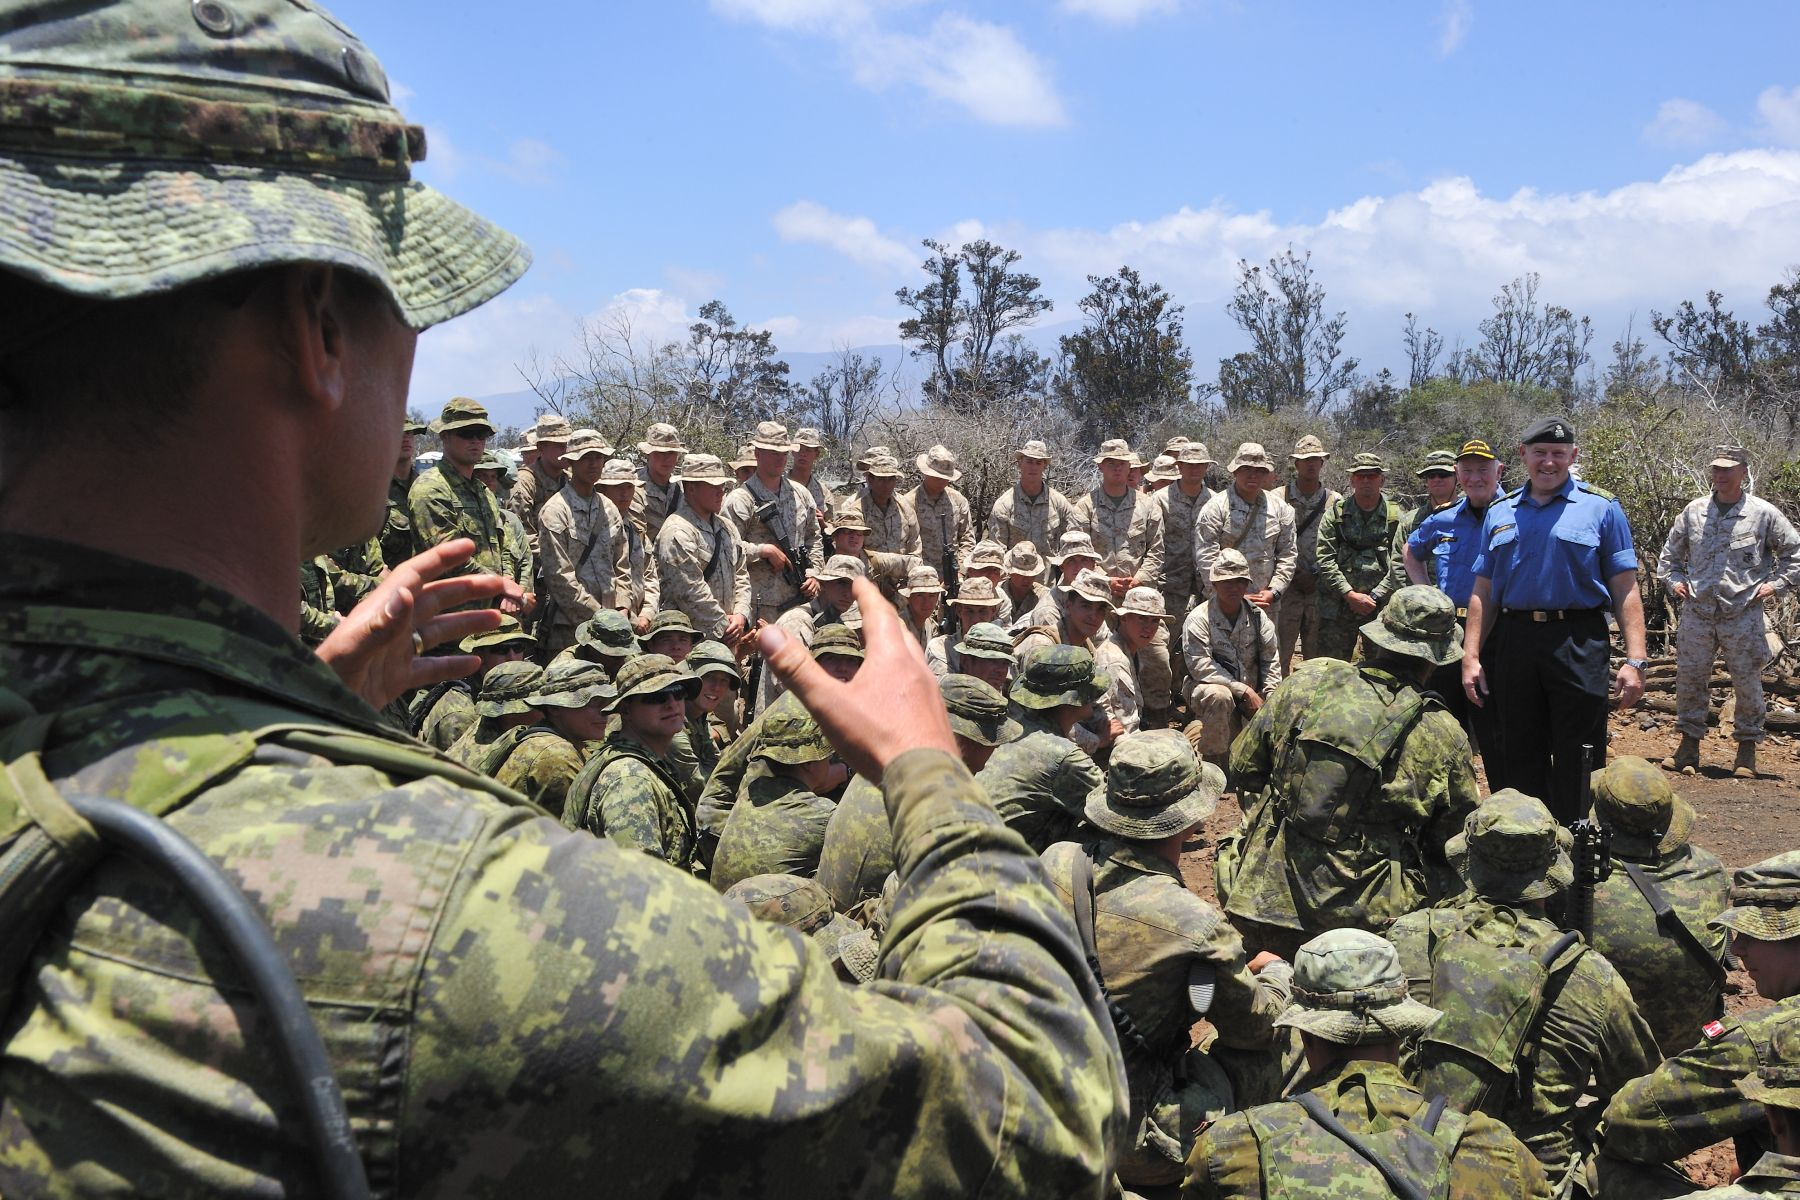 His Excellency and General Natynczyk answered questions from soldiers of 2 PPCLI.